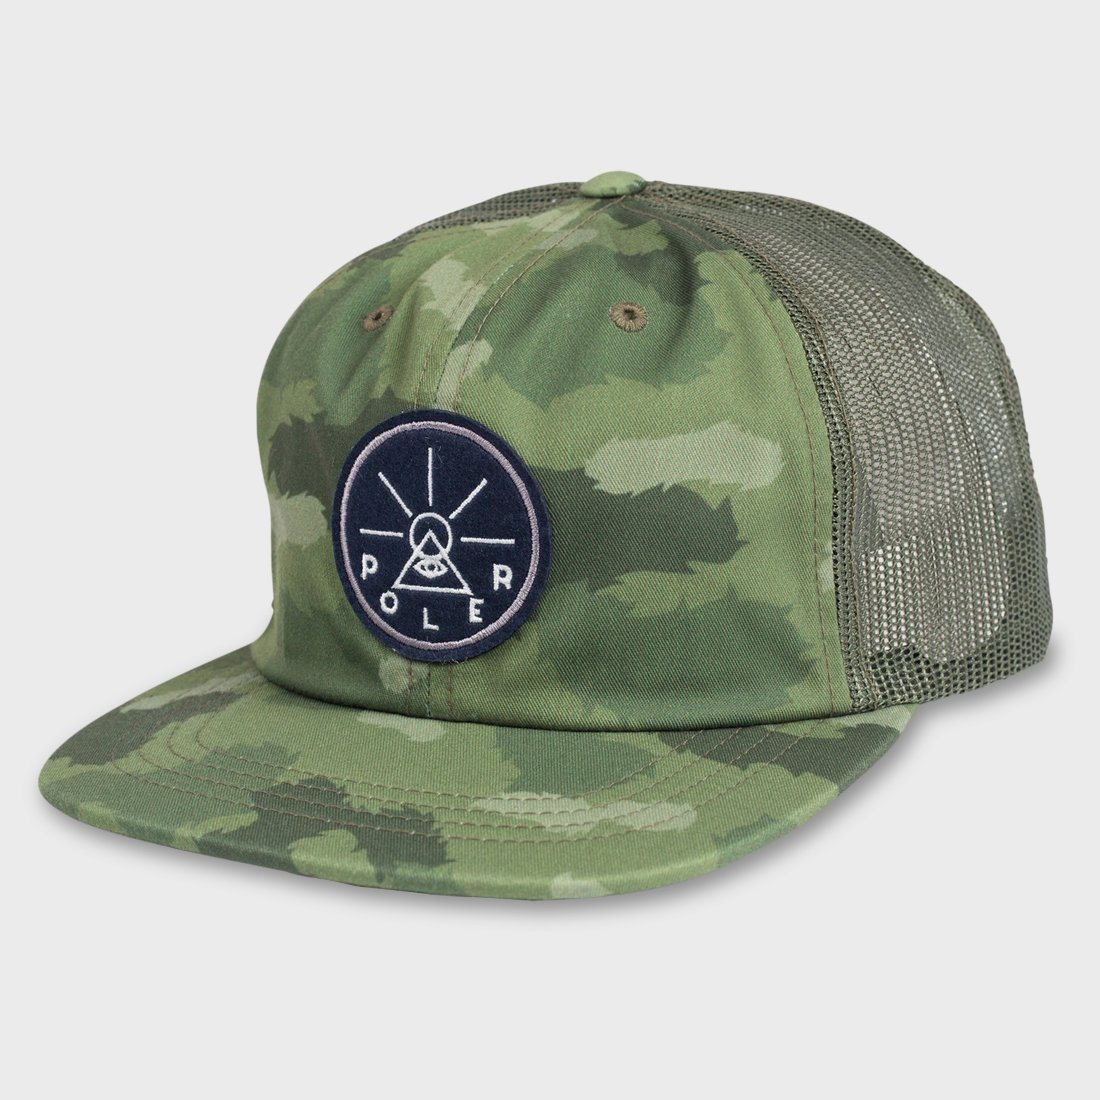 Poler Golden Circle Nylon Floppy Hat Green Fury Camo